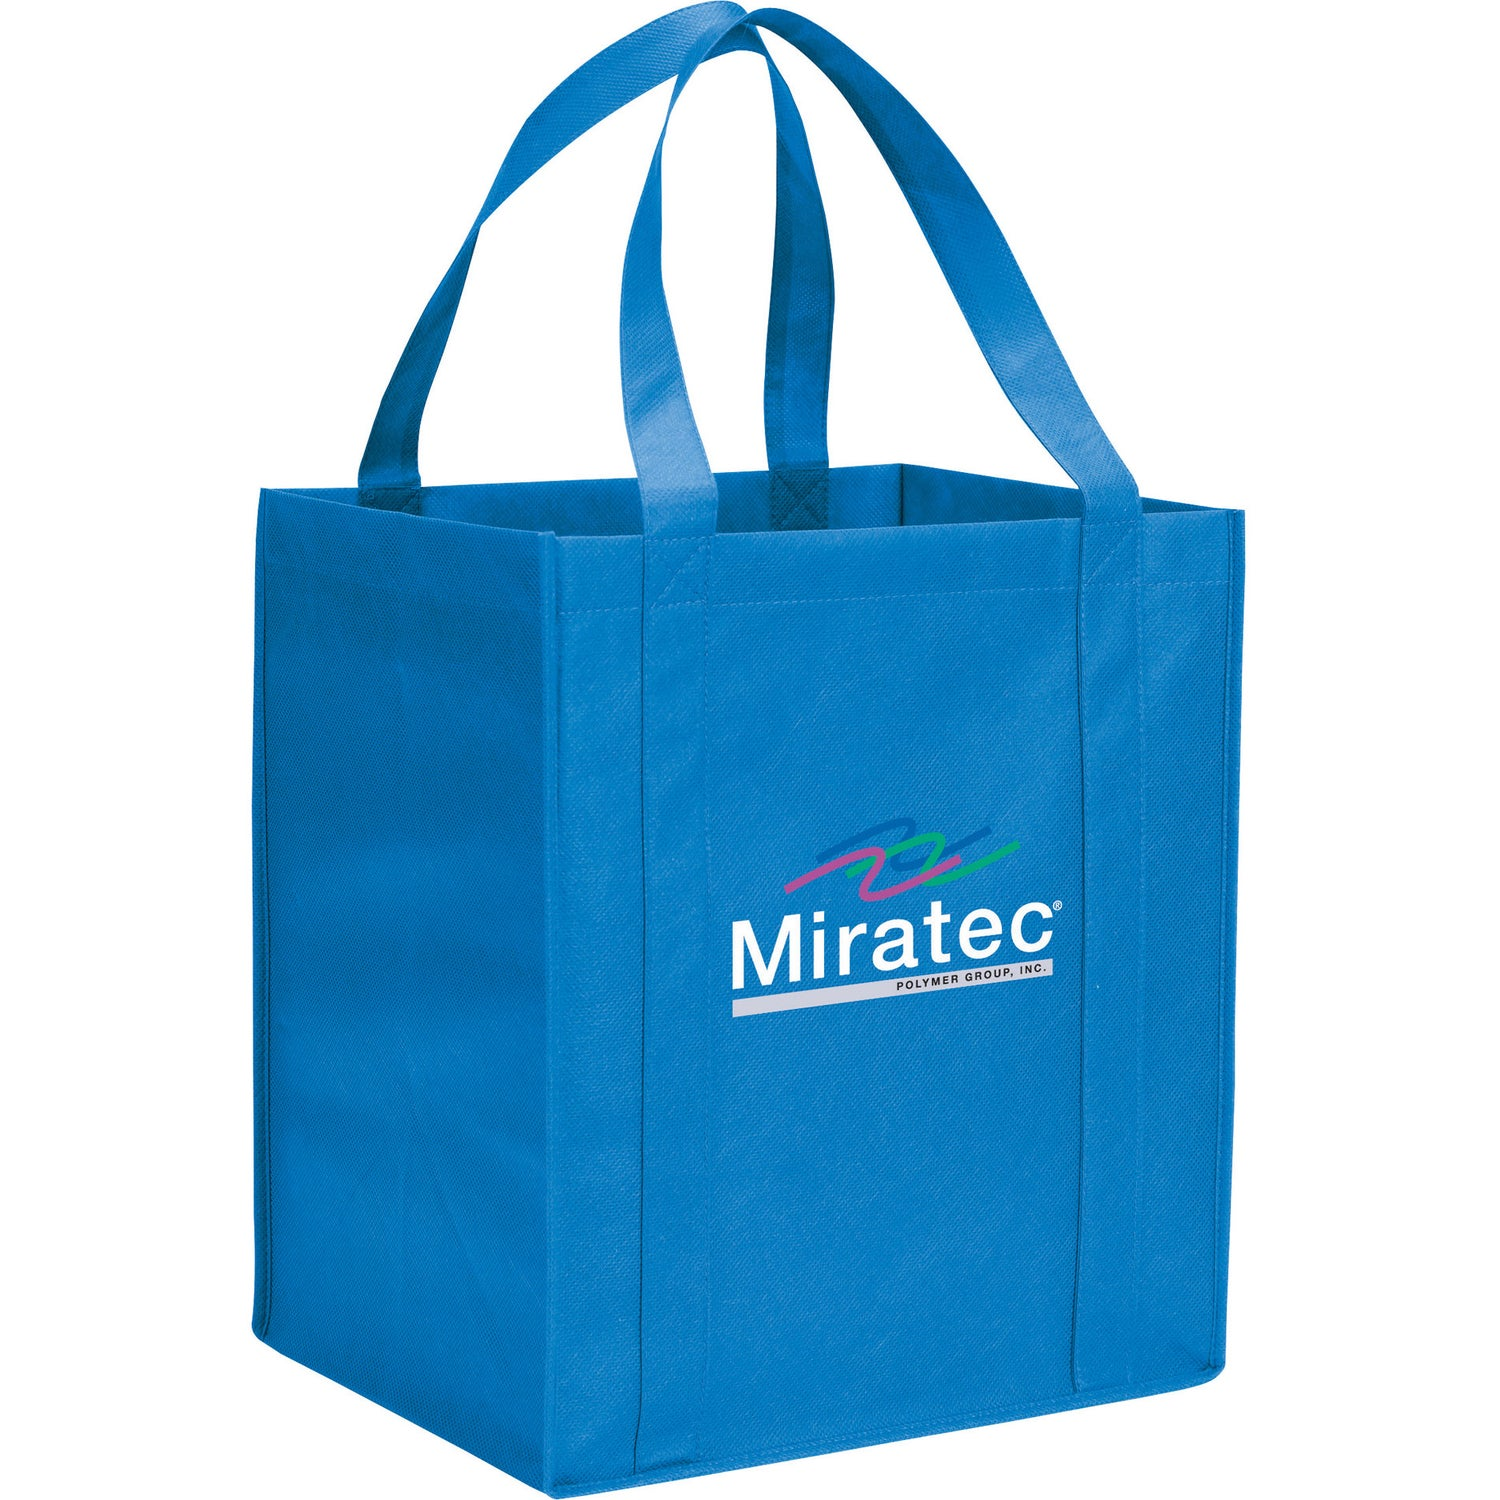 Promotional Hercules Shopping Bag with Custom Logo for $1.07 Ea.